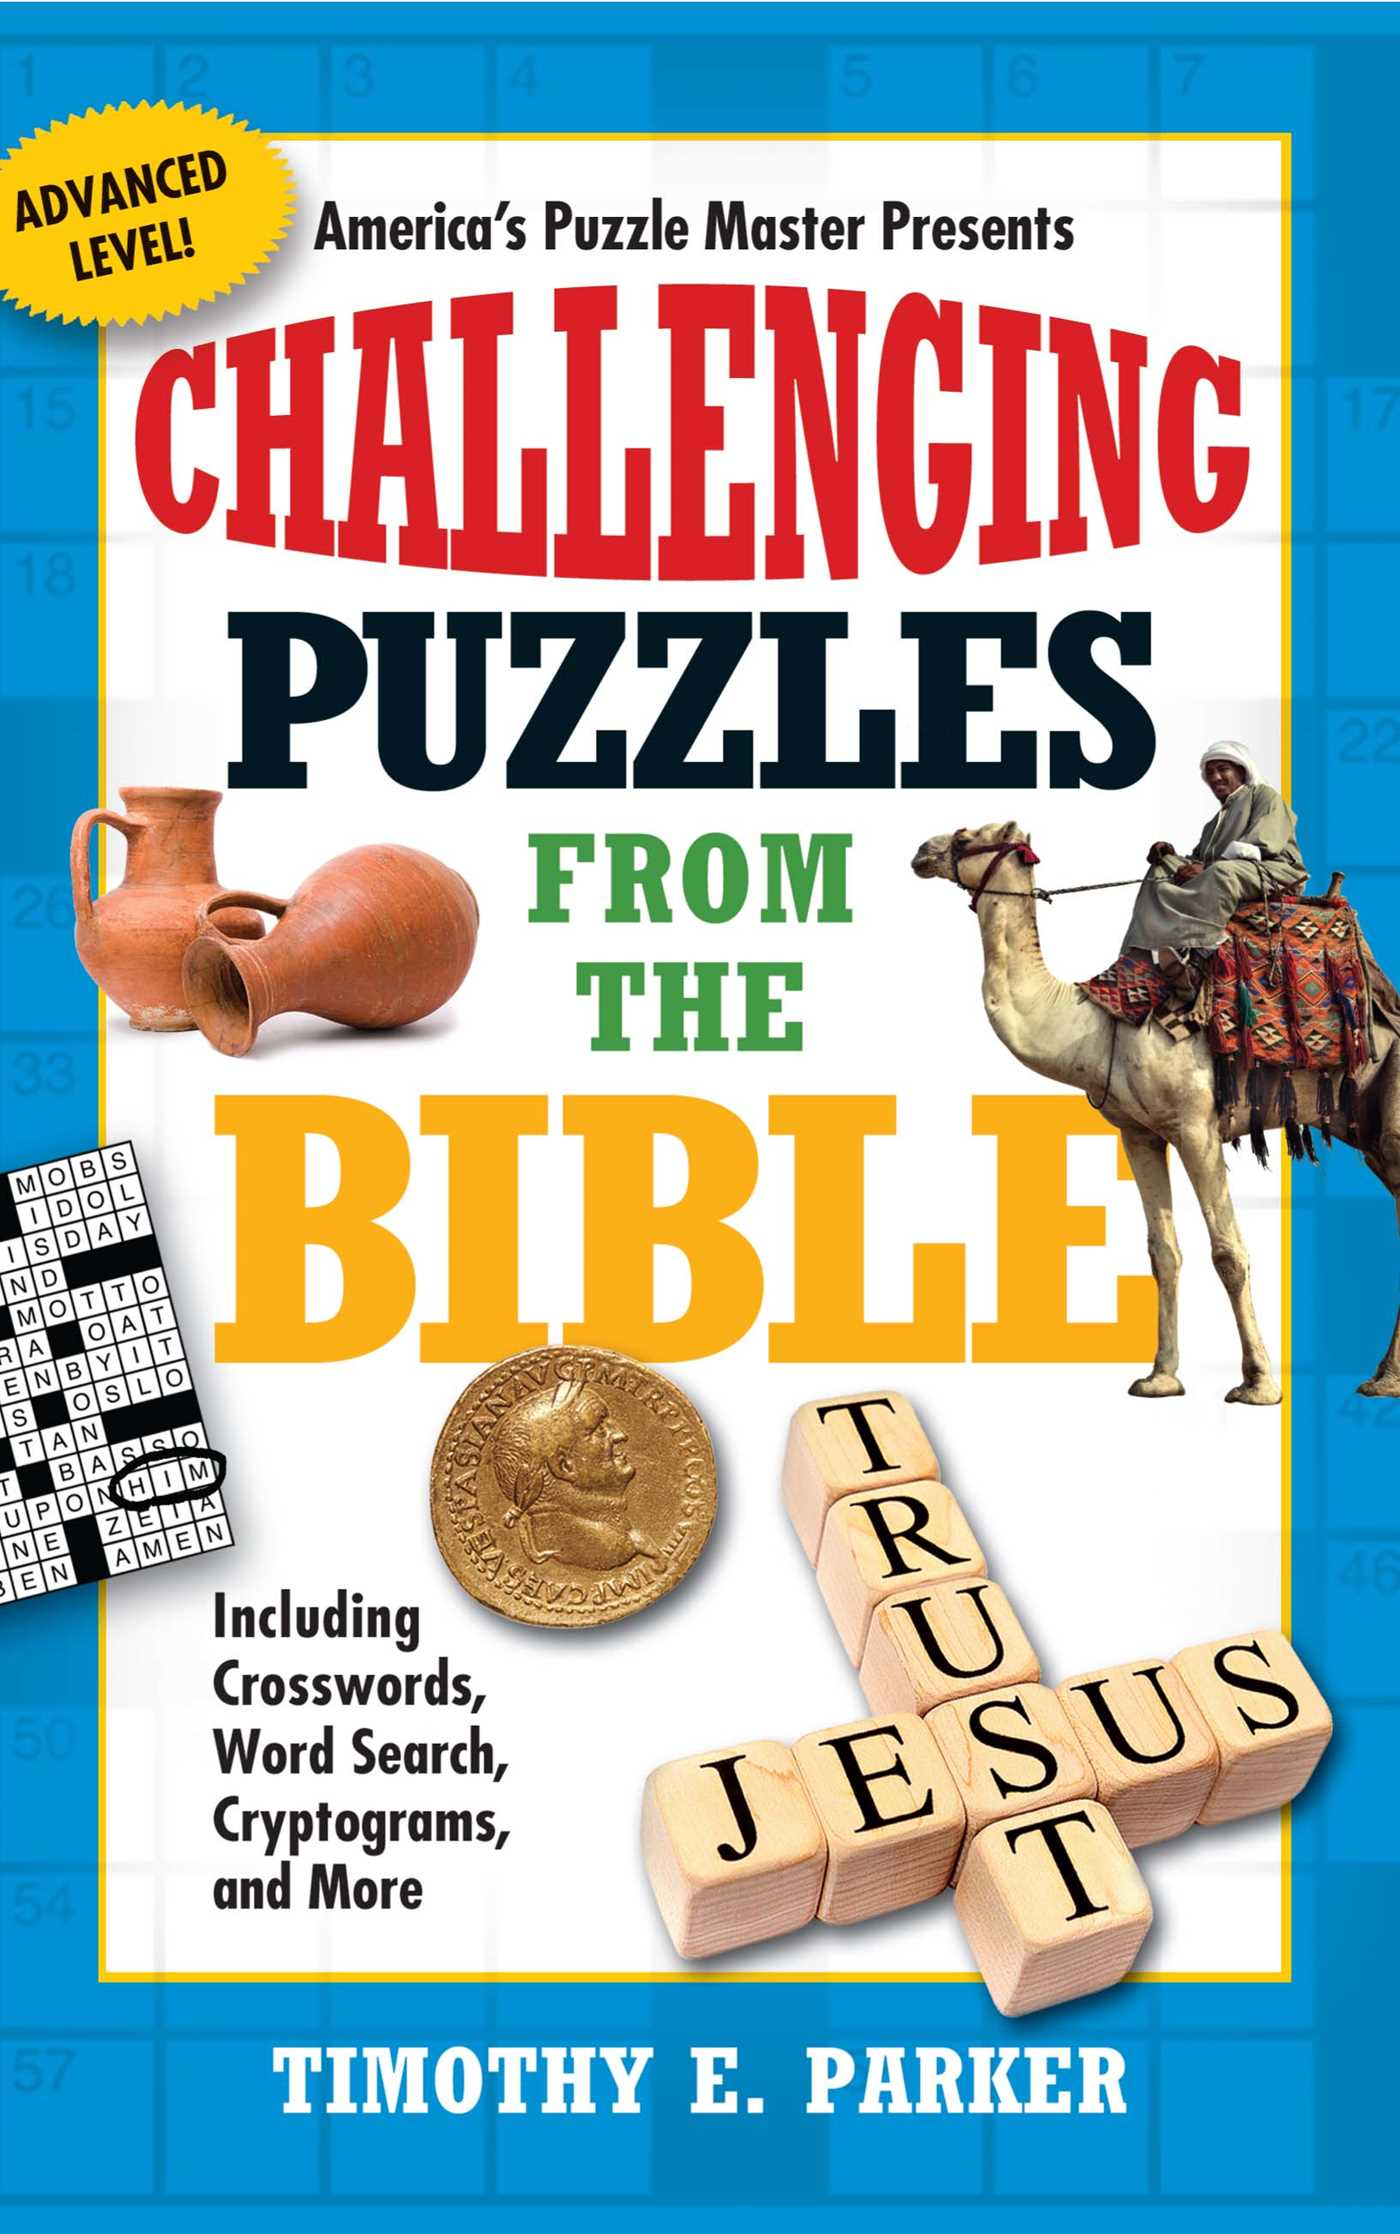 Challenging-puzzles-from-the-bible-9781439192290_hr